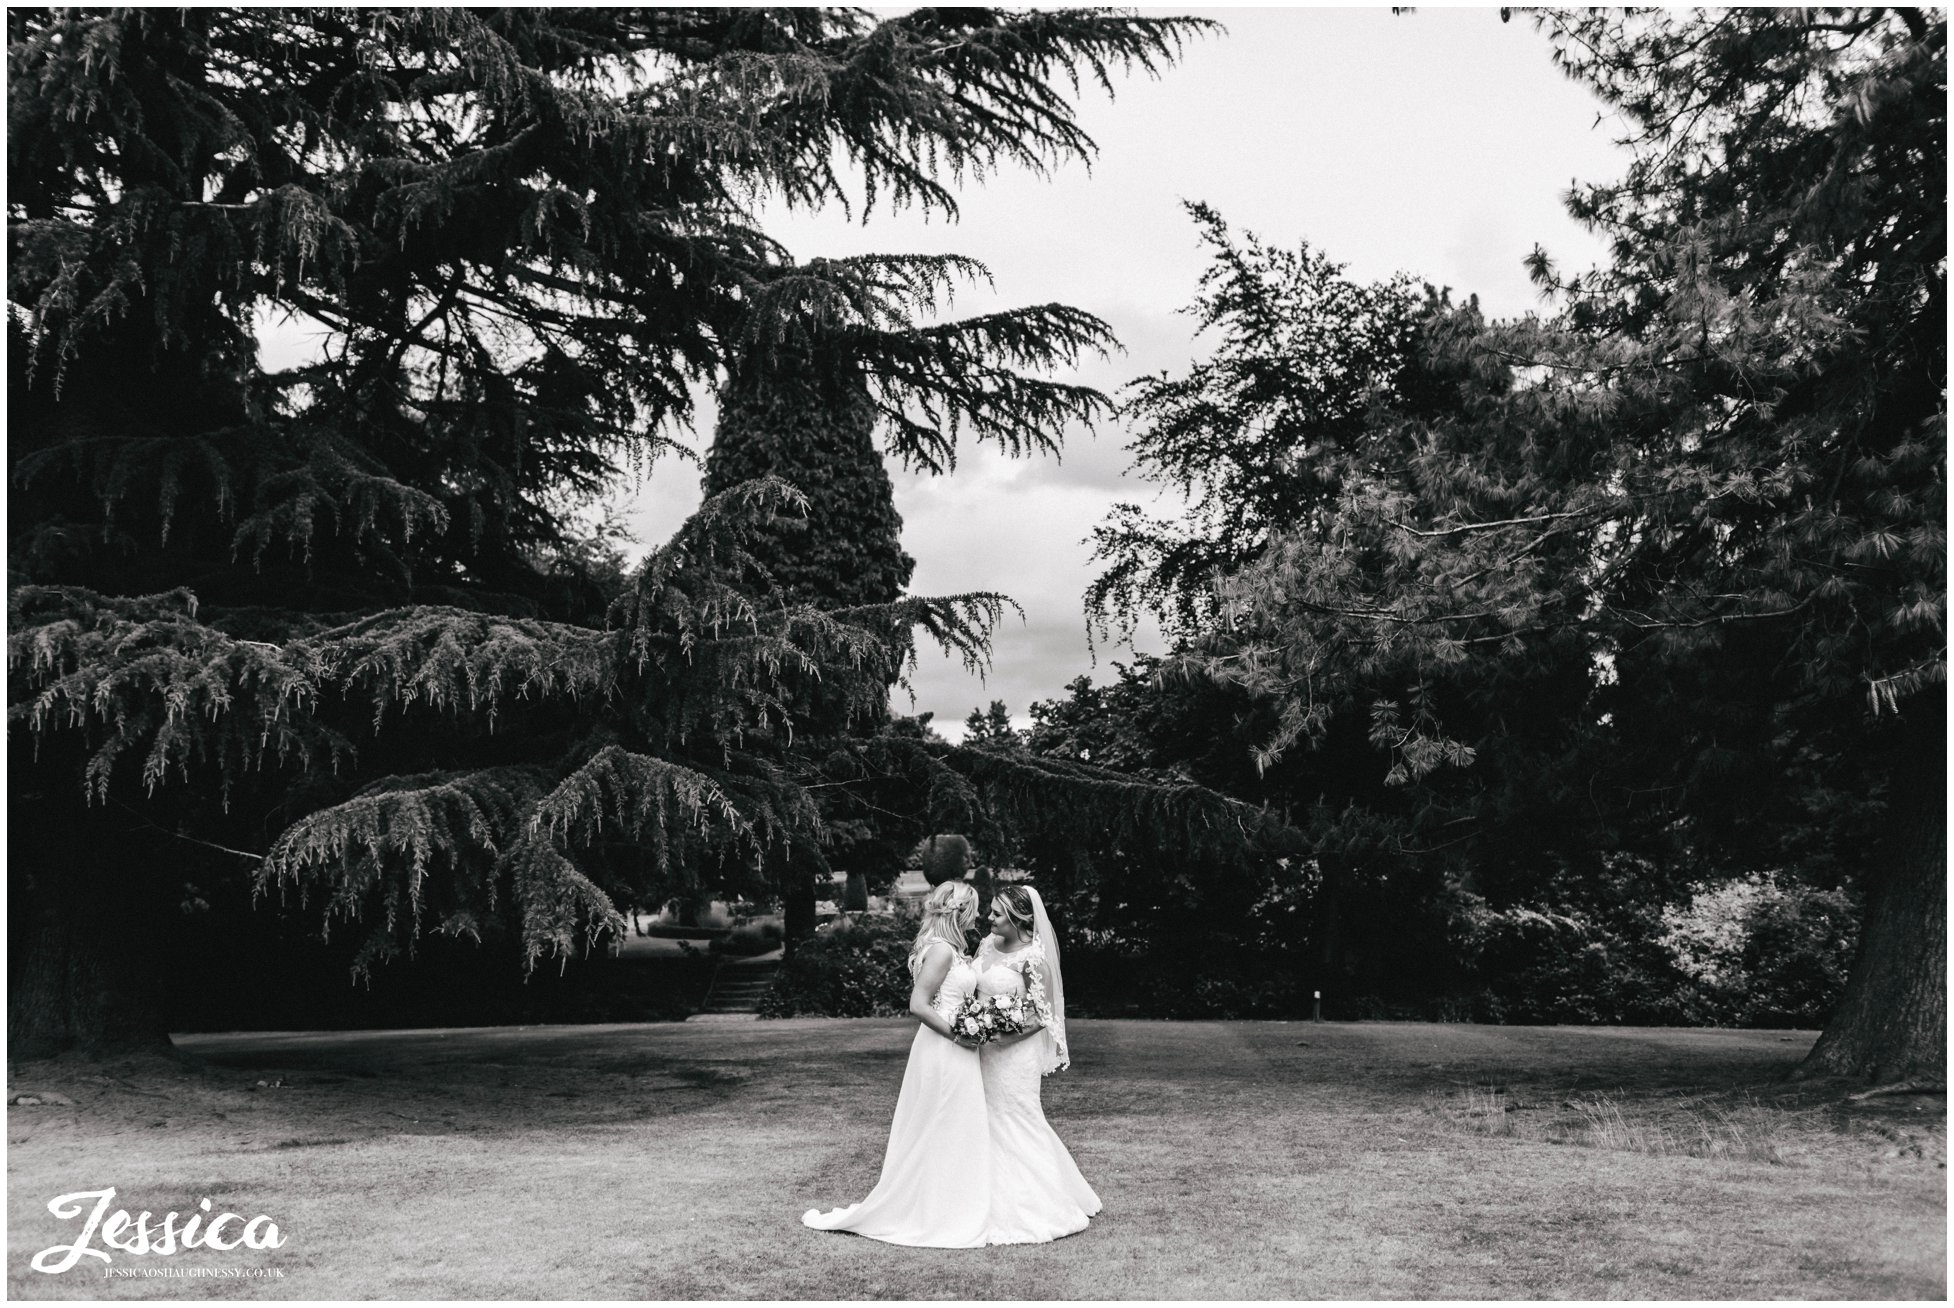 wife & wife kiss in the distance under the huge tree's